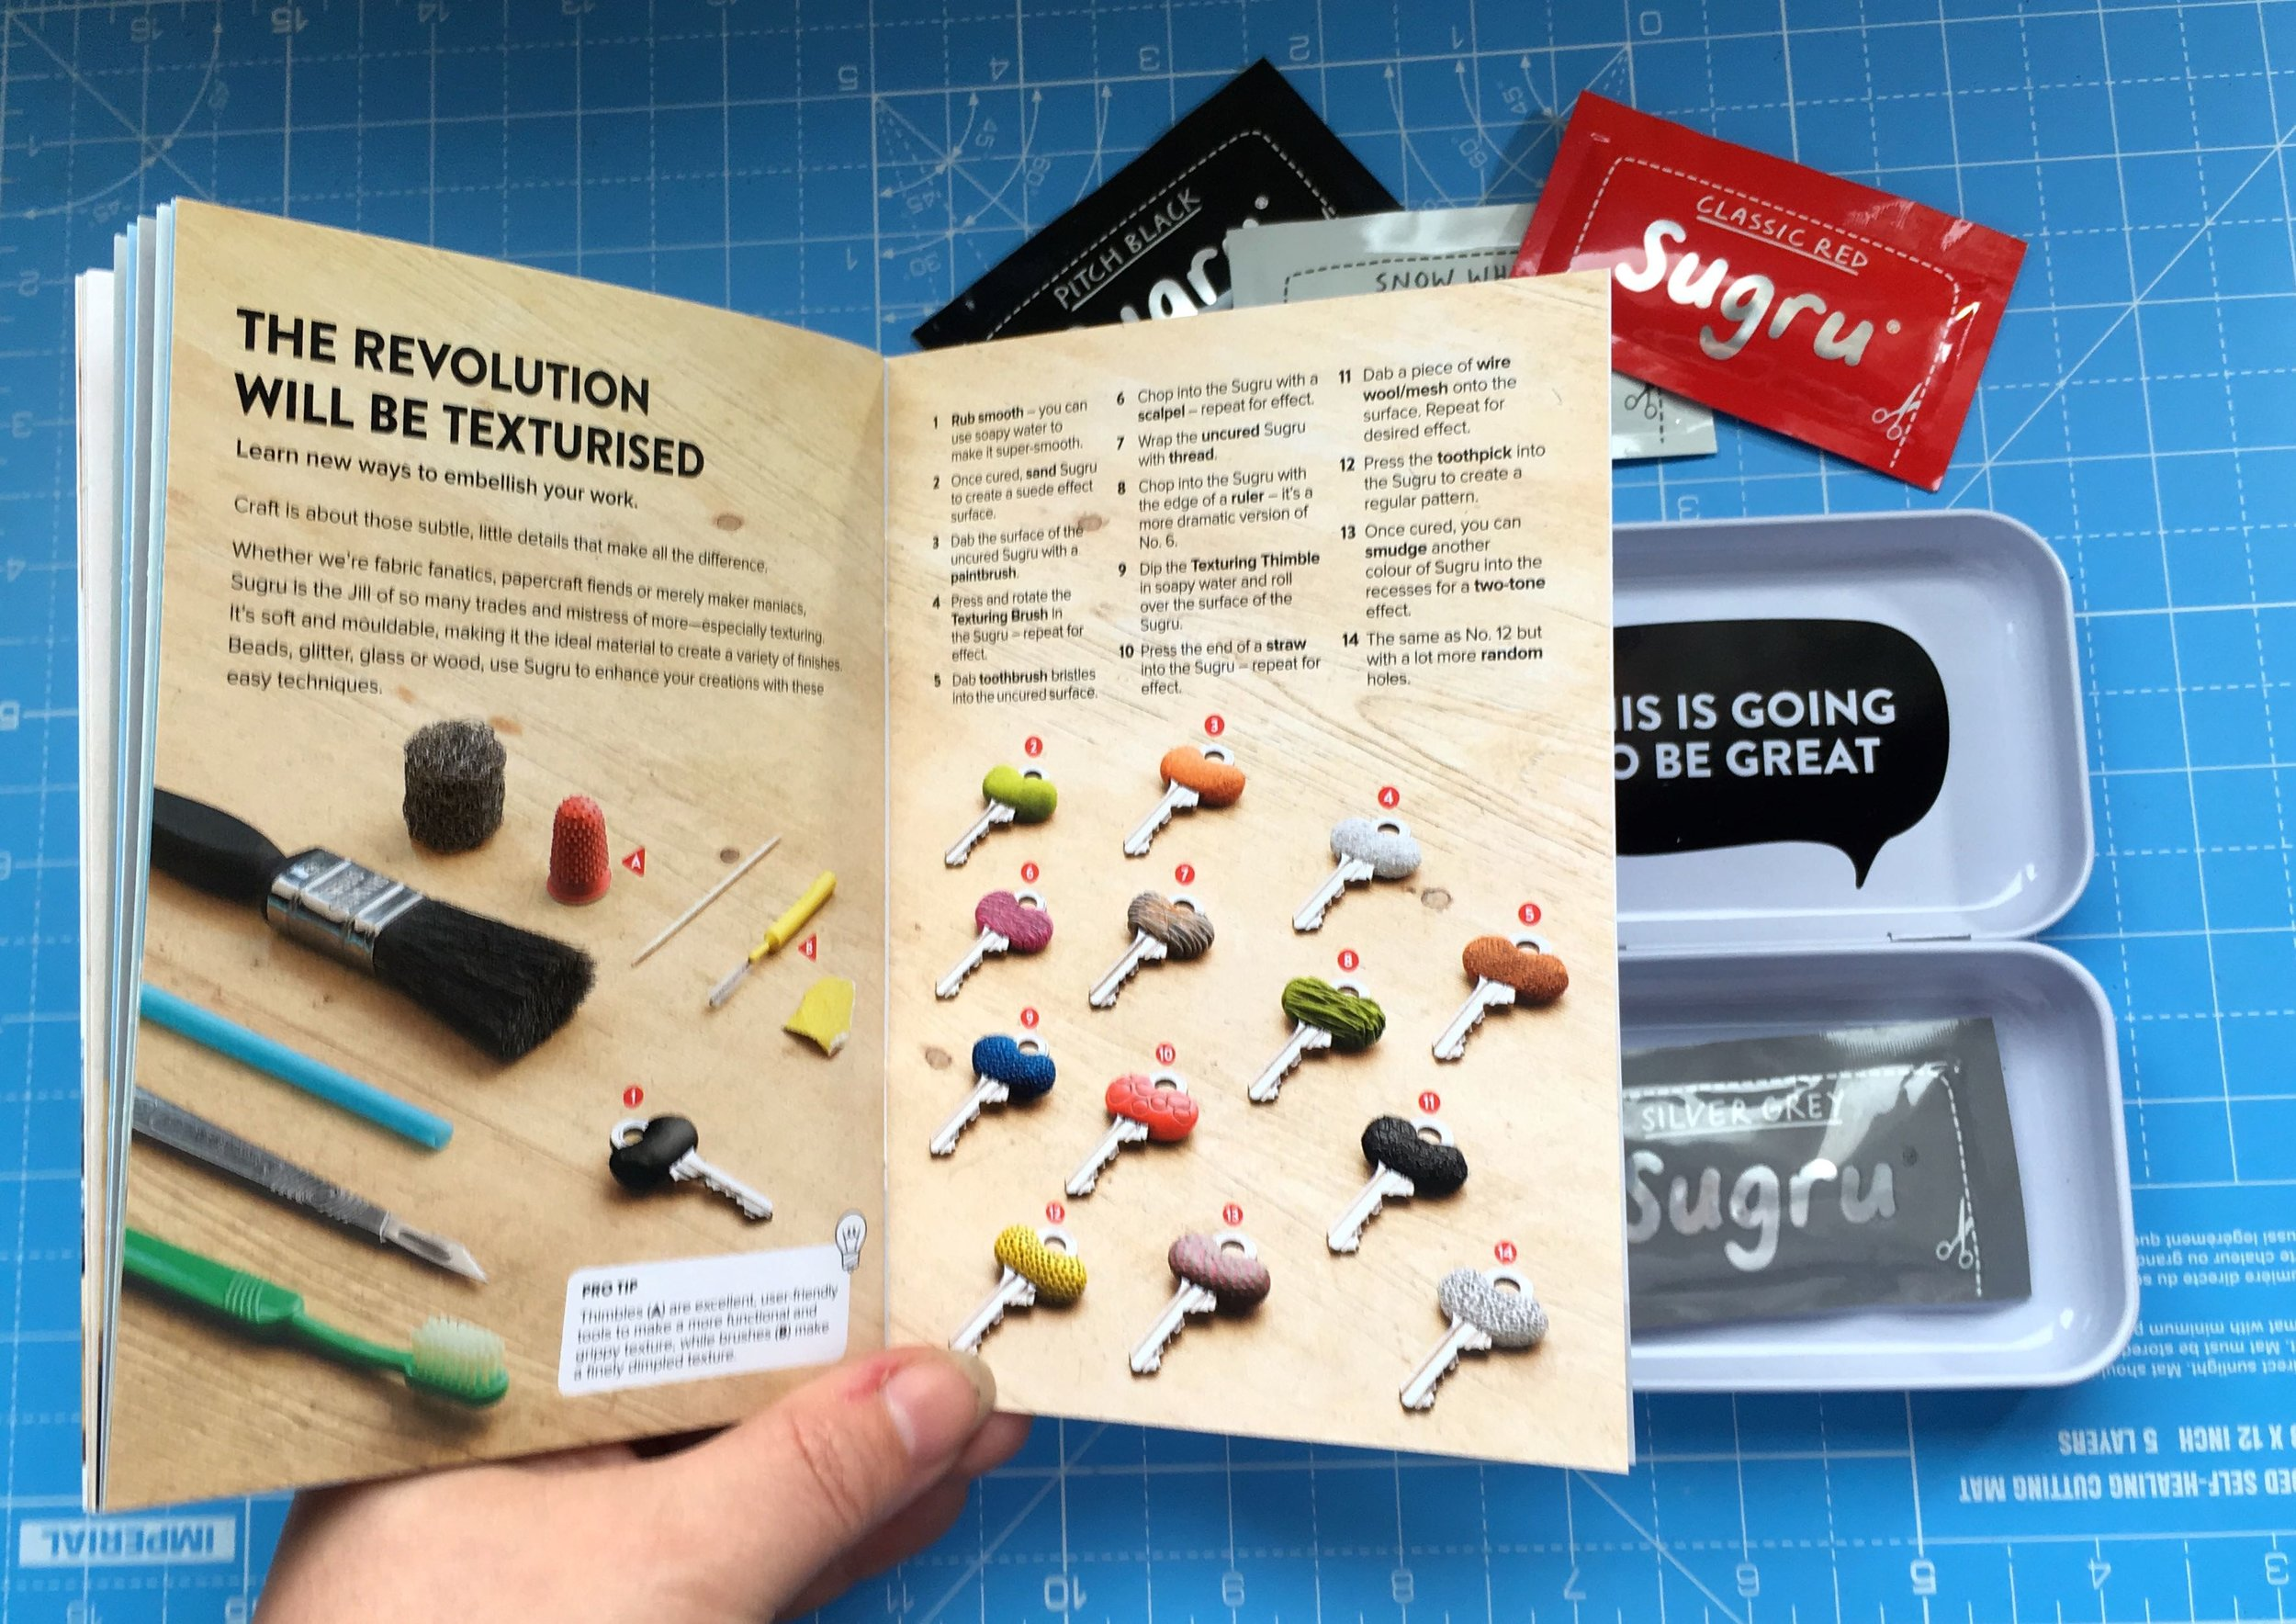 Getting some inspiration from the booklet inside the Sugru Create & Craft kit